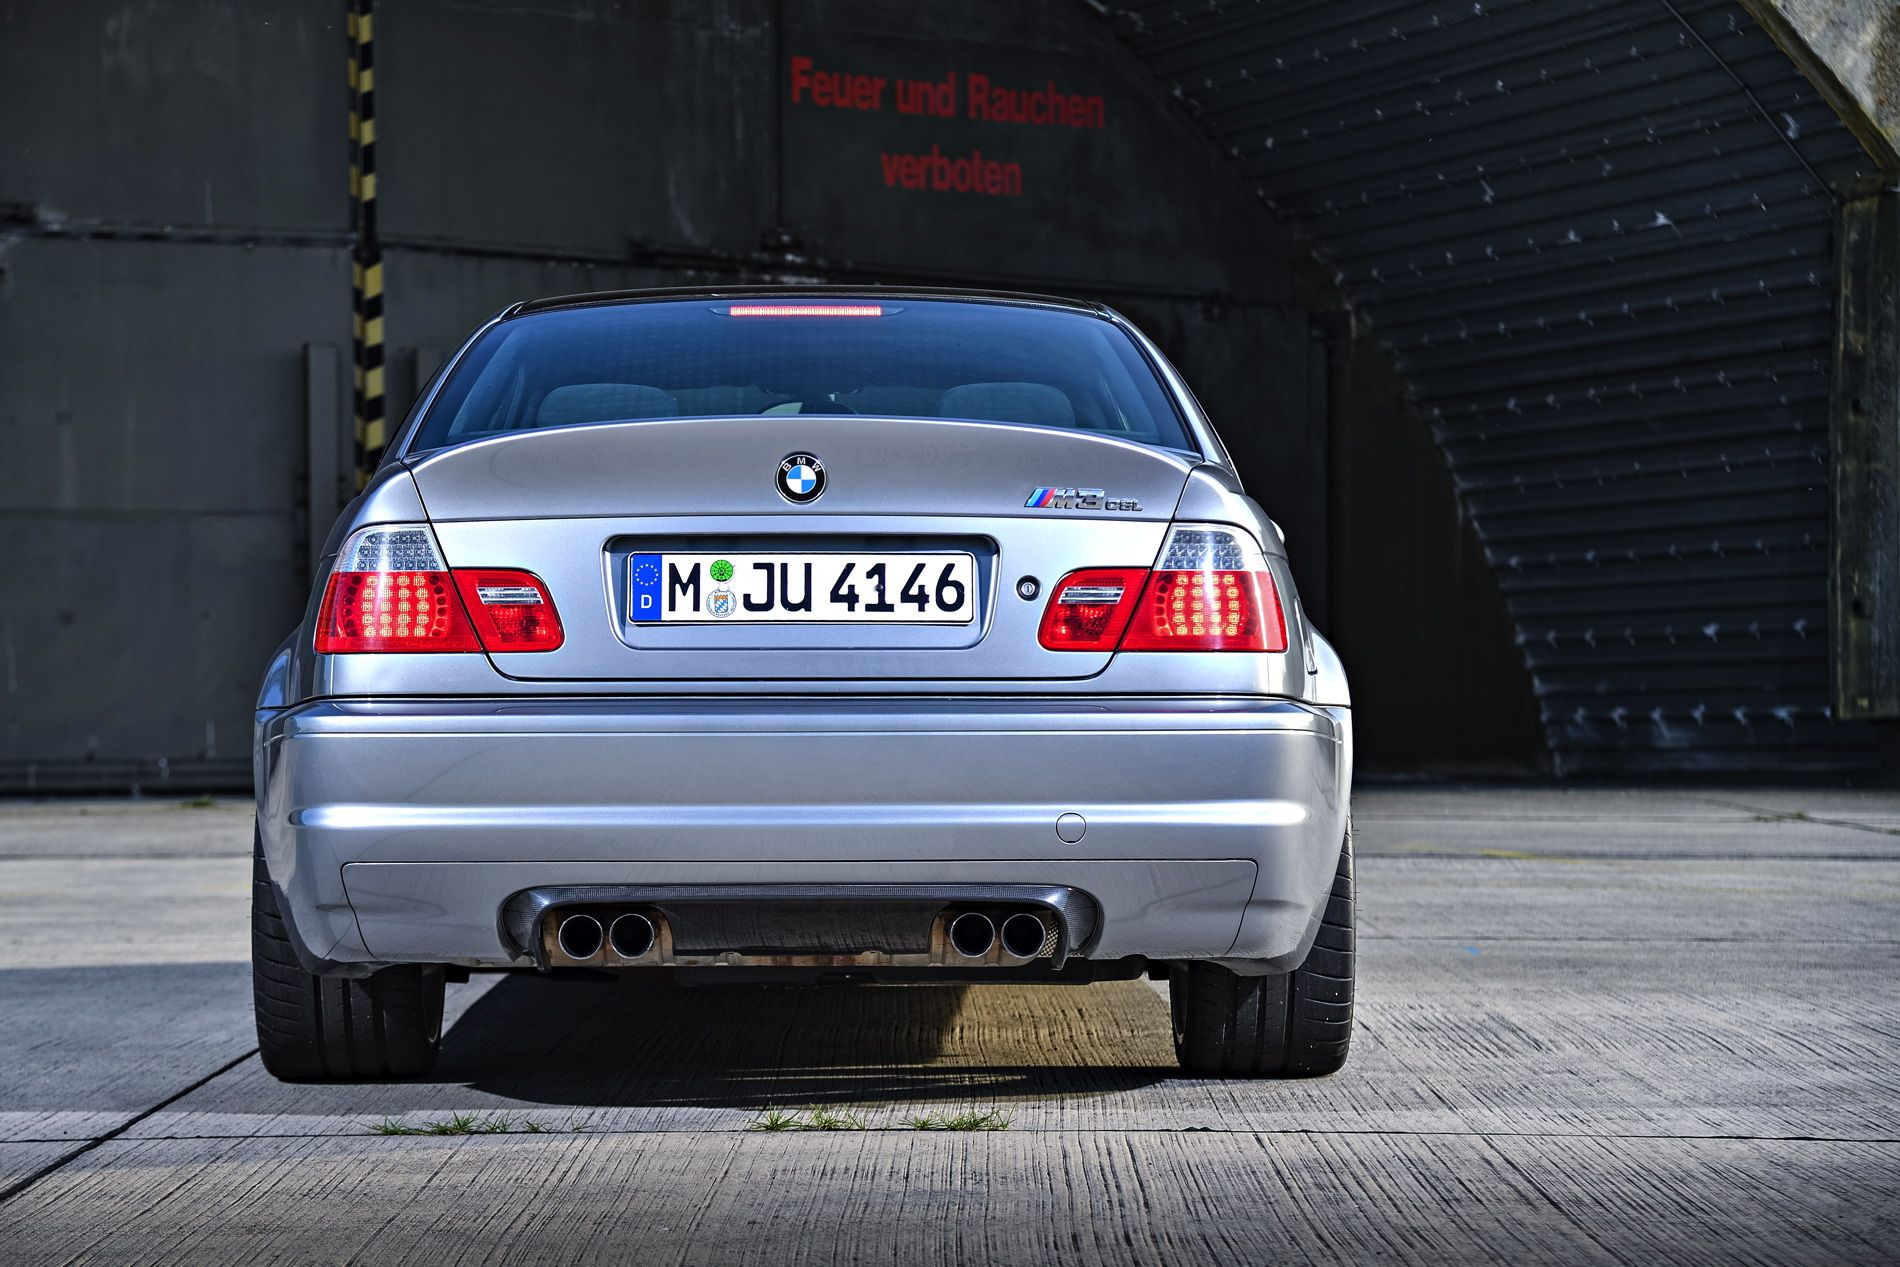 The One And Only Bmw E46 M3 Csl Bmw Bmw E46 Upcoming Cars